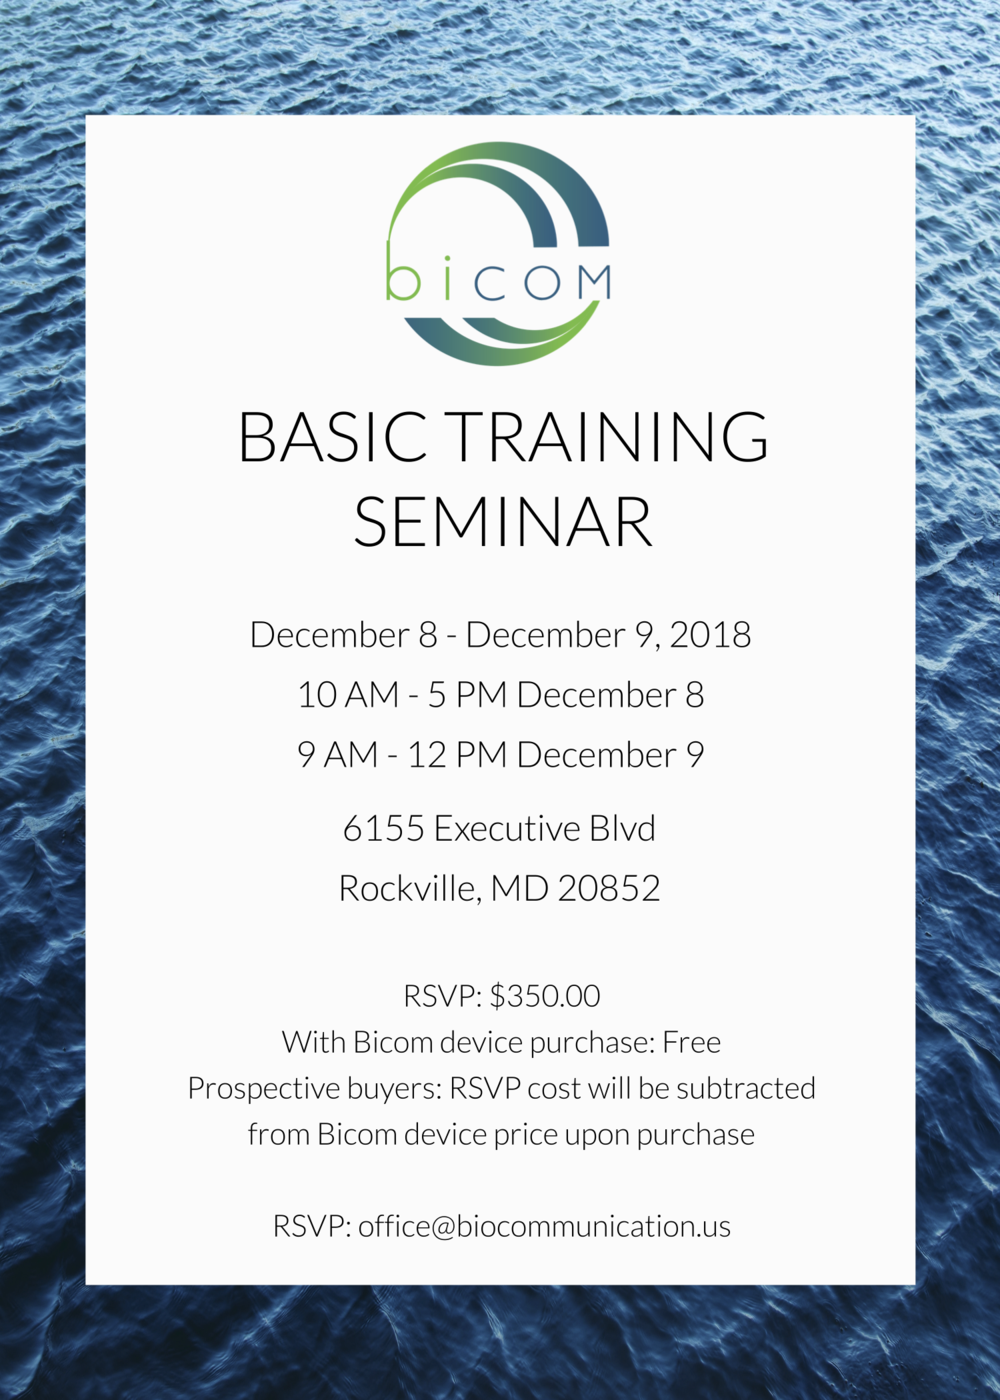 Bicom bioresonance device training will be offered in Bethesda, MD (Near Washington DC) this december. Training is offered for practitioners across Americas, including the USA, Canada, Mexico, and Central and South America. Biocommunication is a project of Galaxy health Technology, LLC.